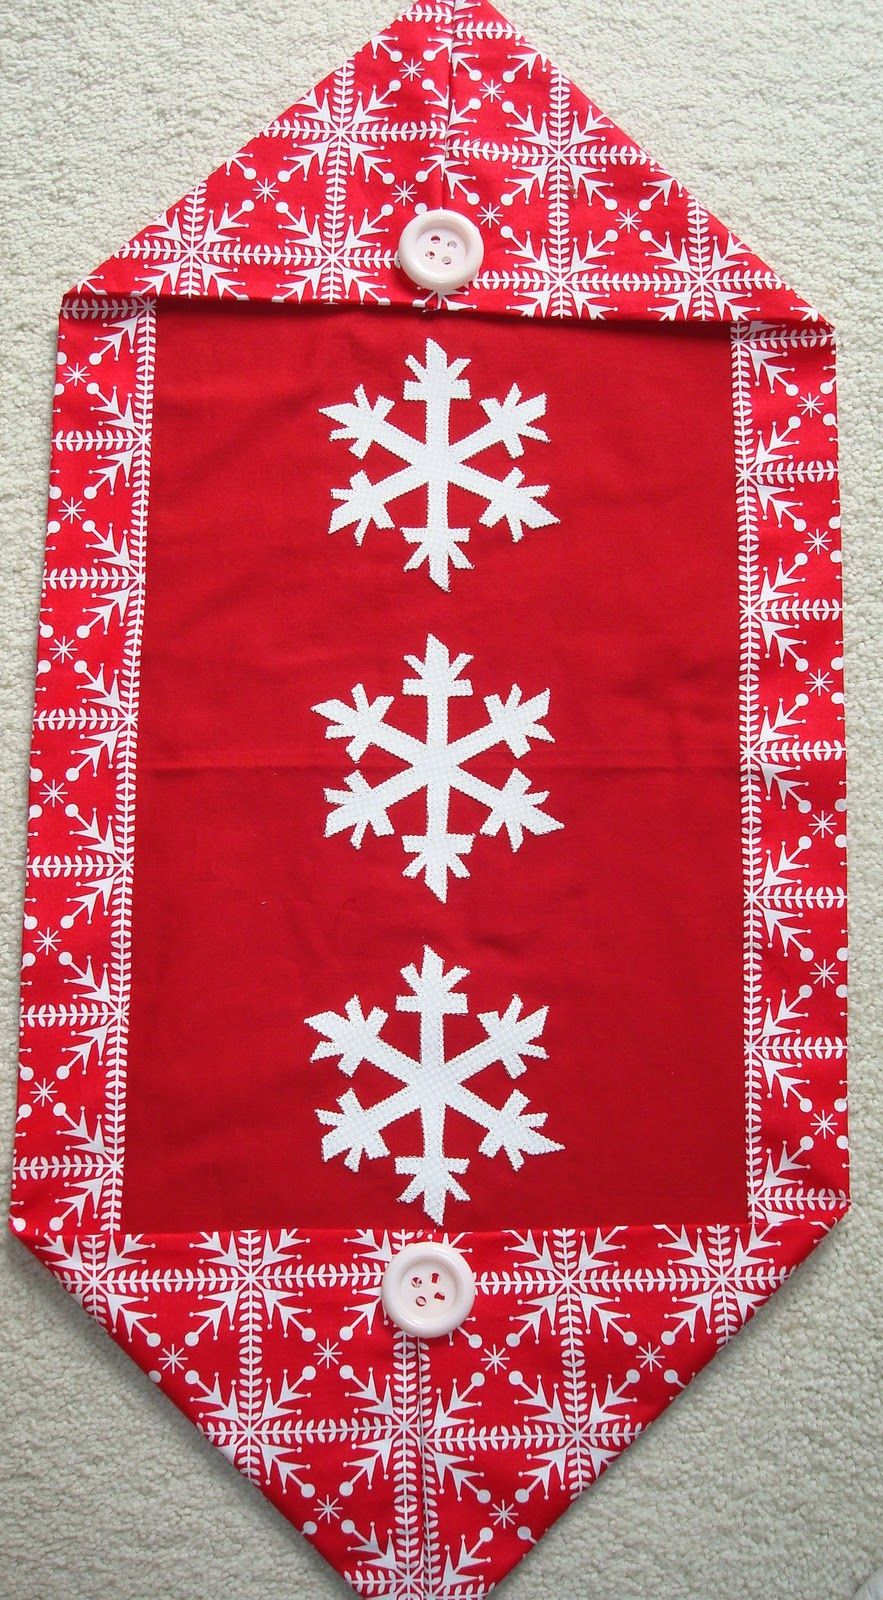 One Hour And Ten Minute Table Runner 10 Minute Table Runner Table Runner Pattern Christmas Table Runner Pattern